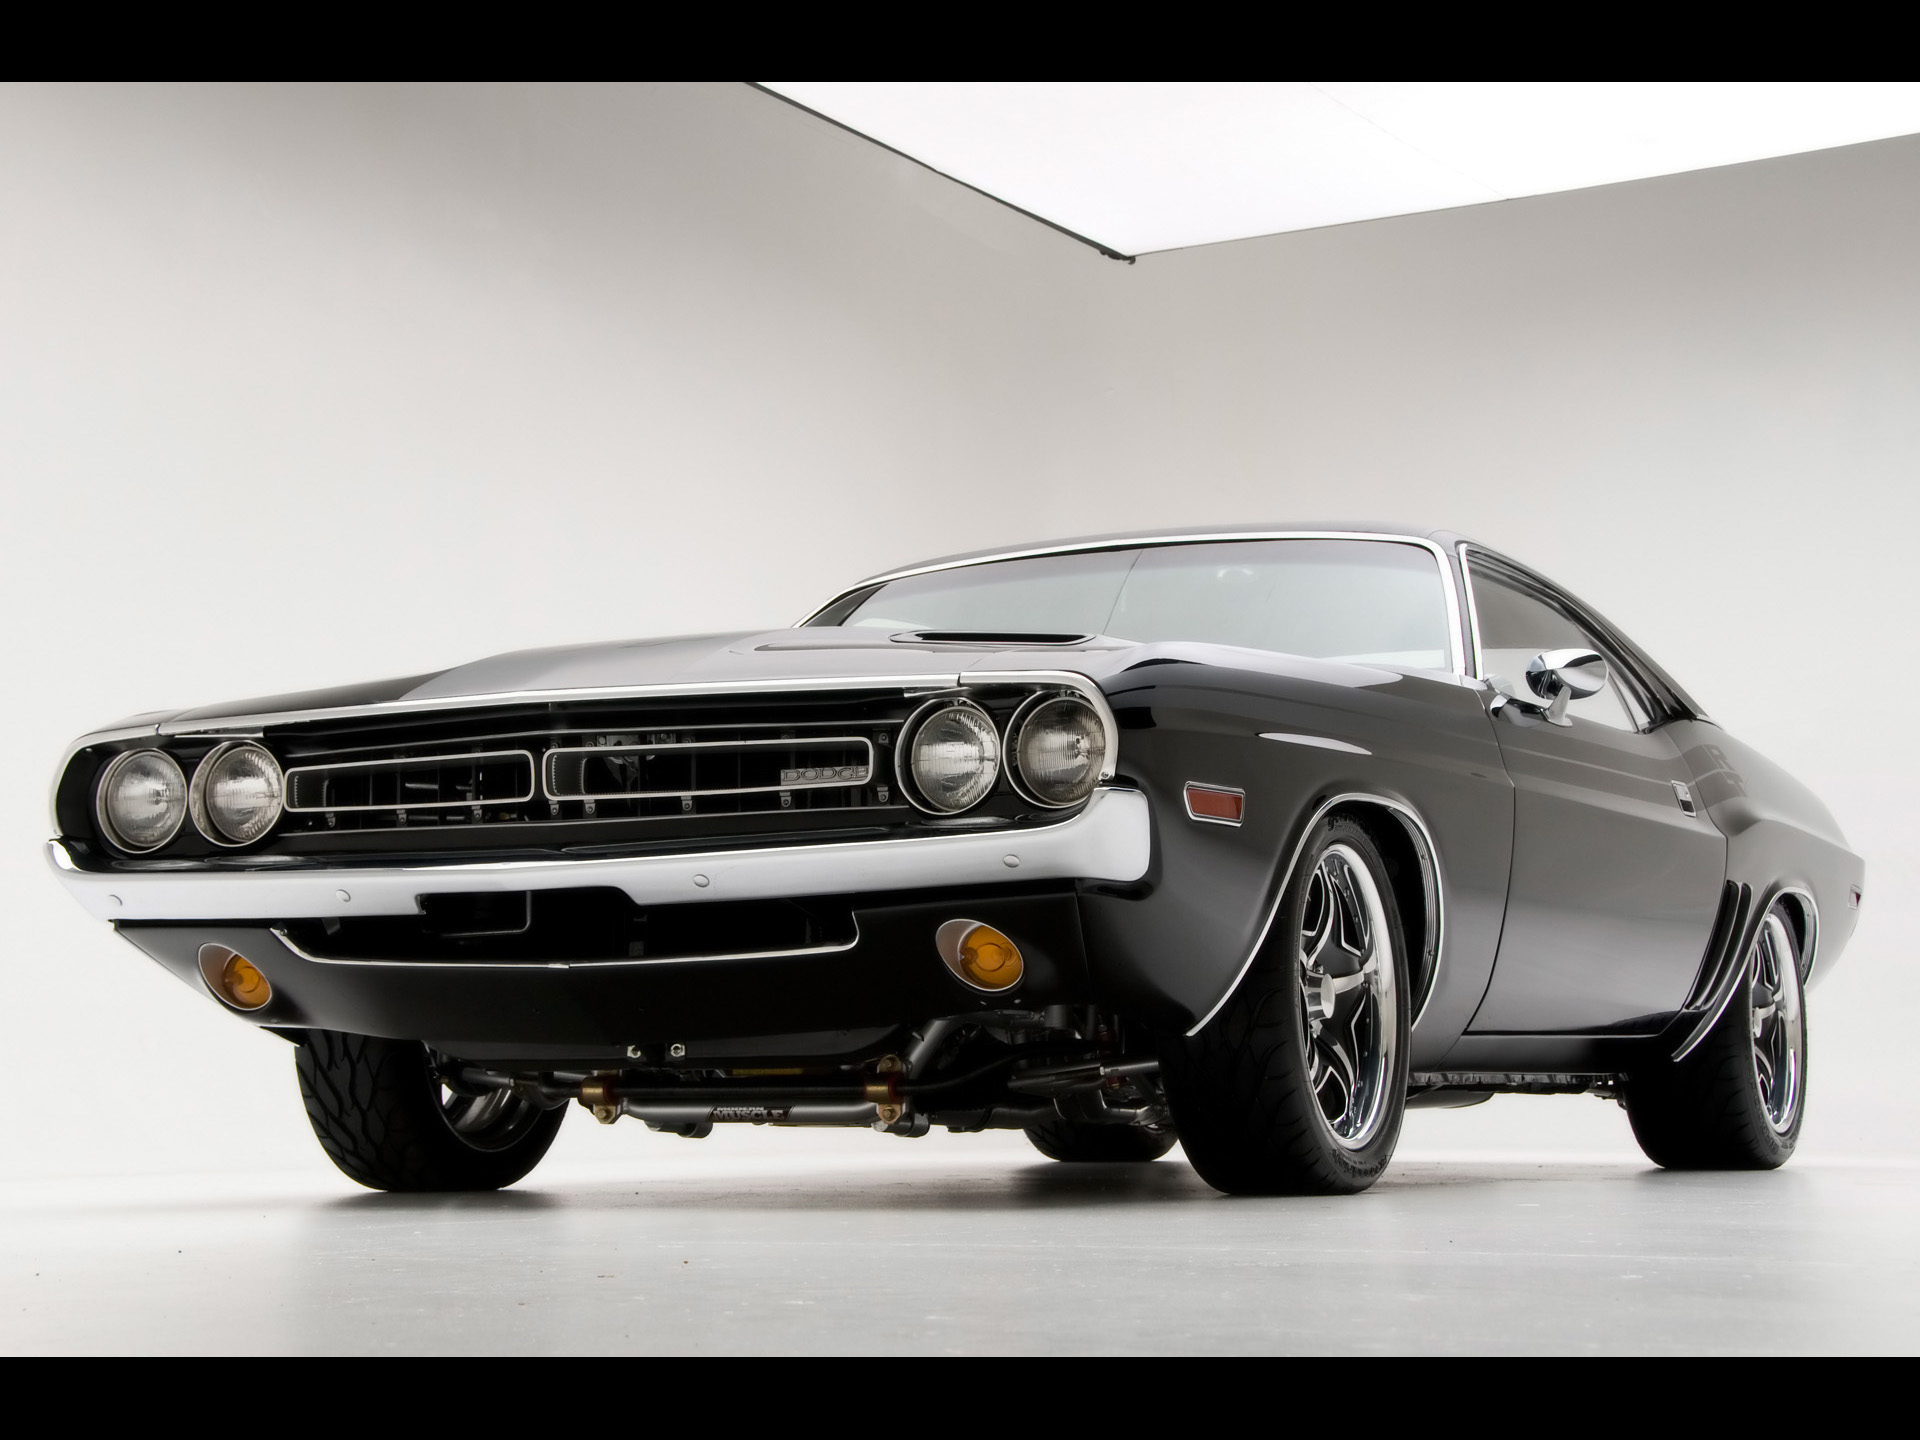 Muscle Car Wallpapers Wallpaper Pics Pictures Hd for Desktop 1920x1440